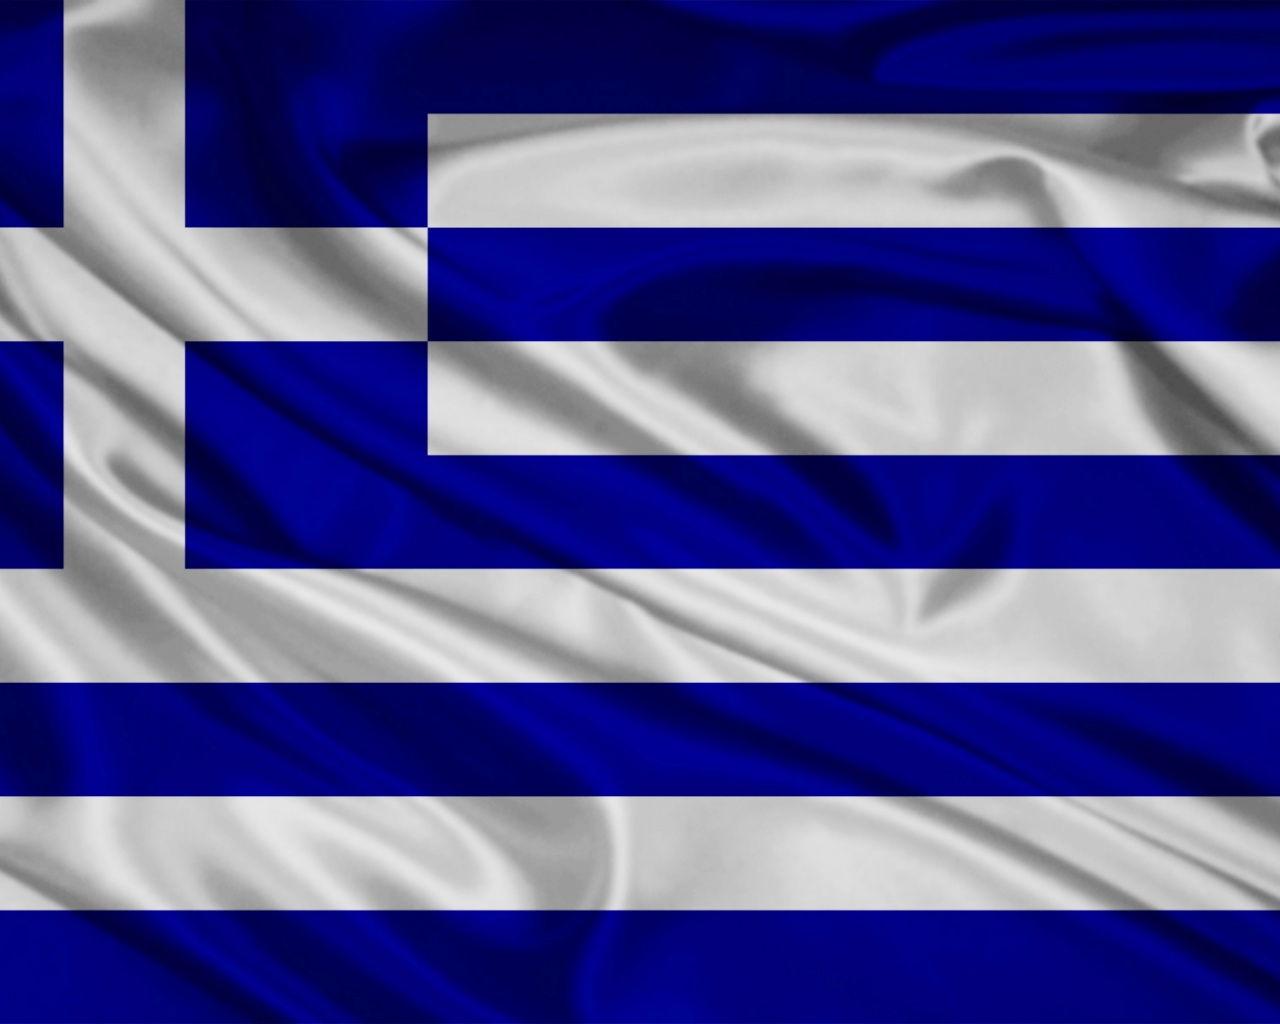 flag greek flag greece greek flag greece greek flag related greek flag 1280x1024